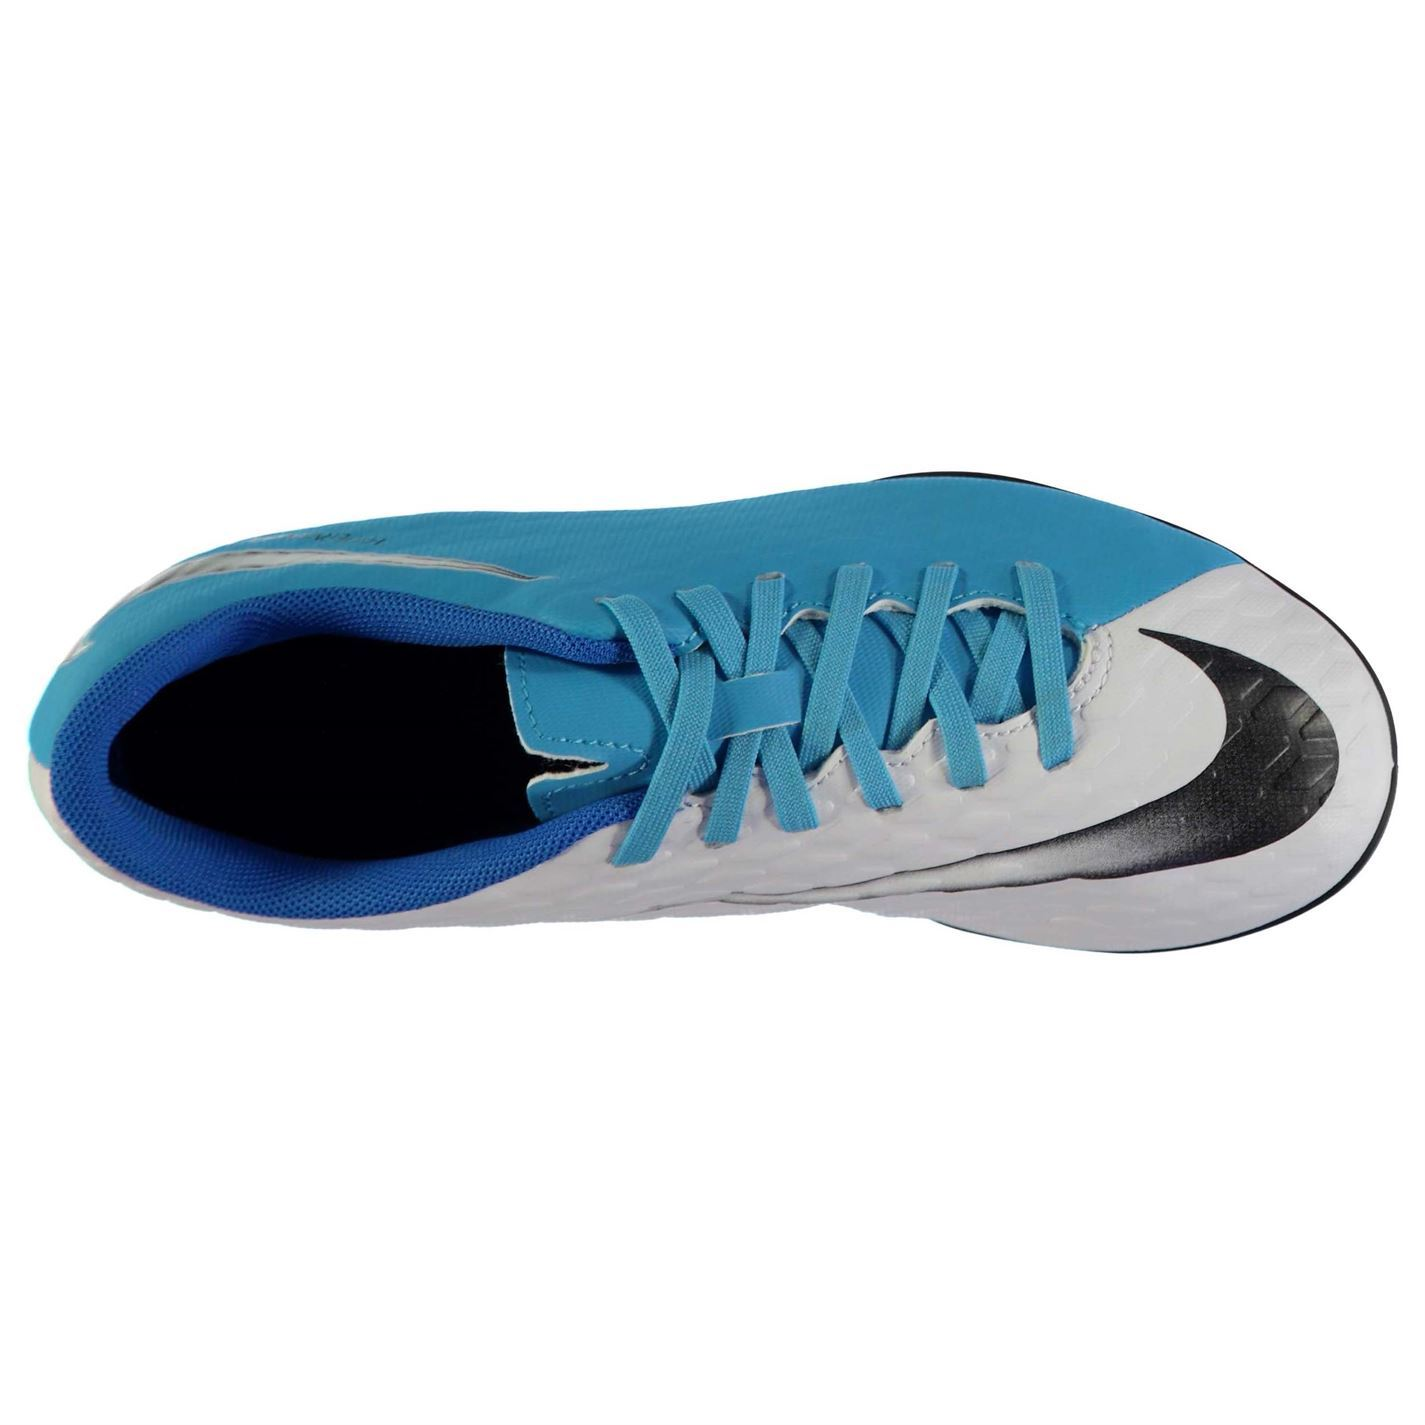 981961166424 Lace up fastening 201116 OENWHBT. Nike Mercurial Veloce  discount sale  6dfea e1c06 ... Nike Hypervenom 3 Phade Firm Ground Football Boots Juniors  ...